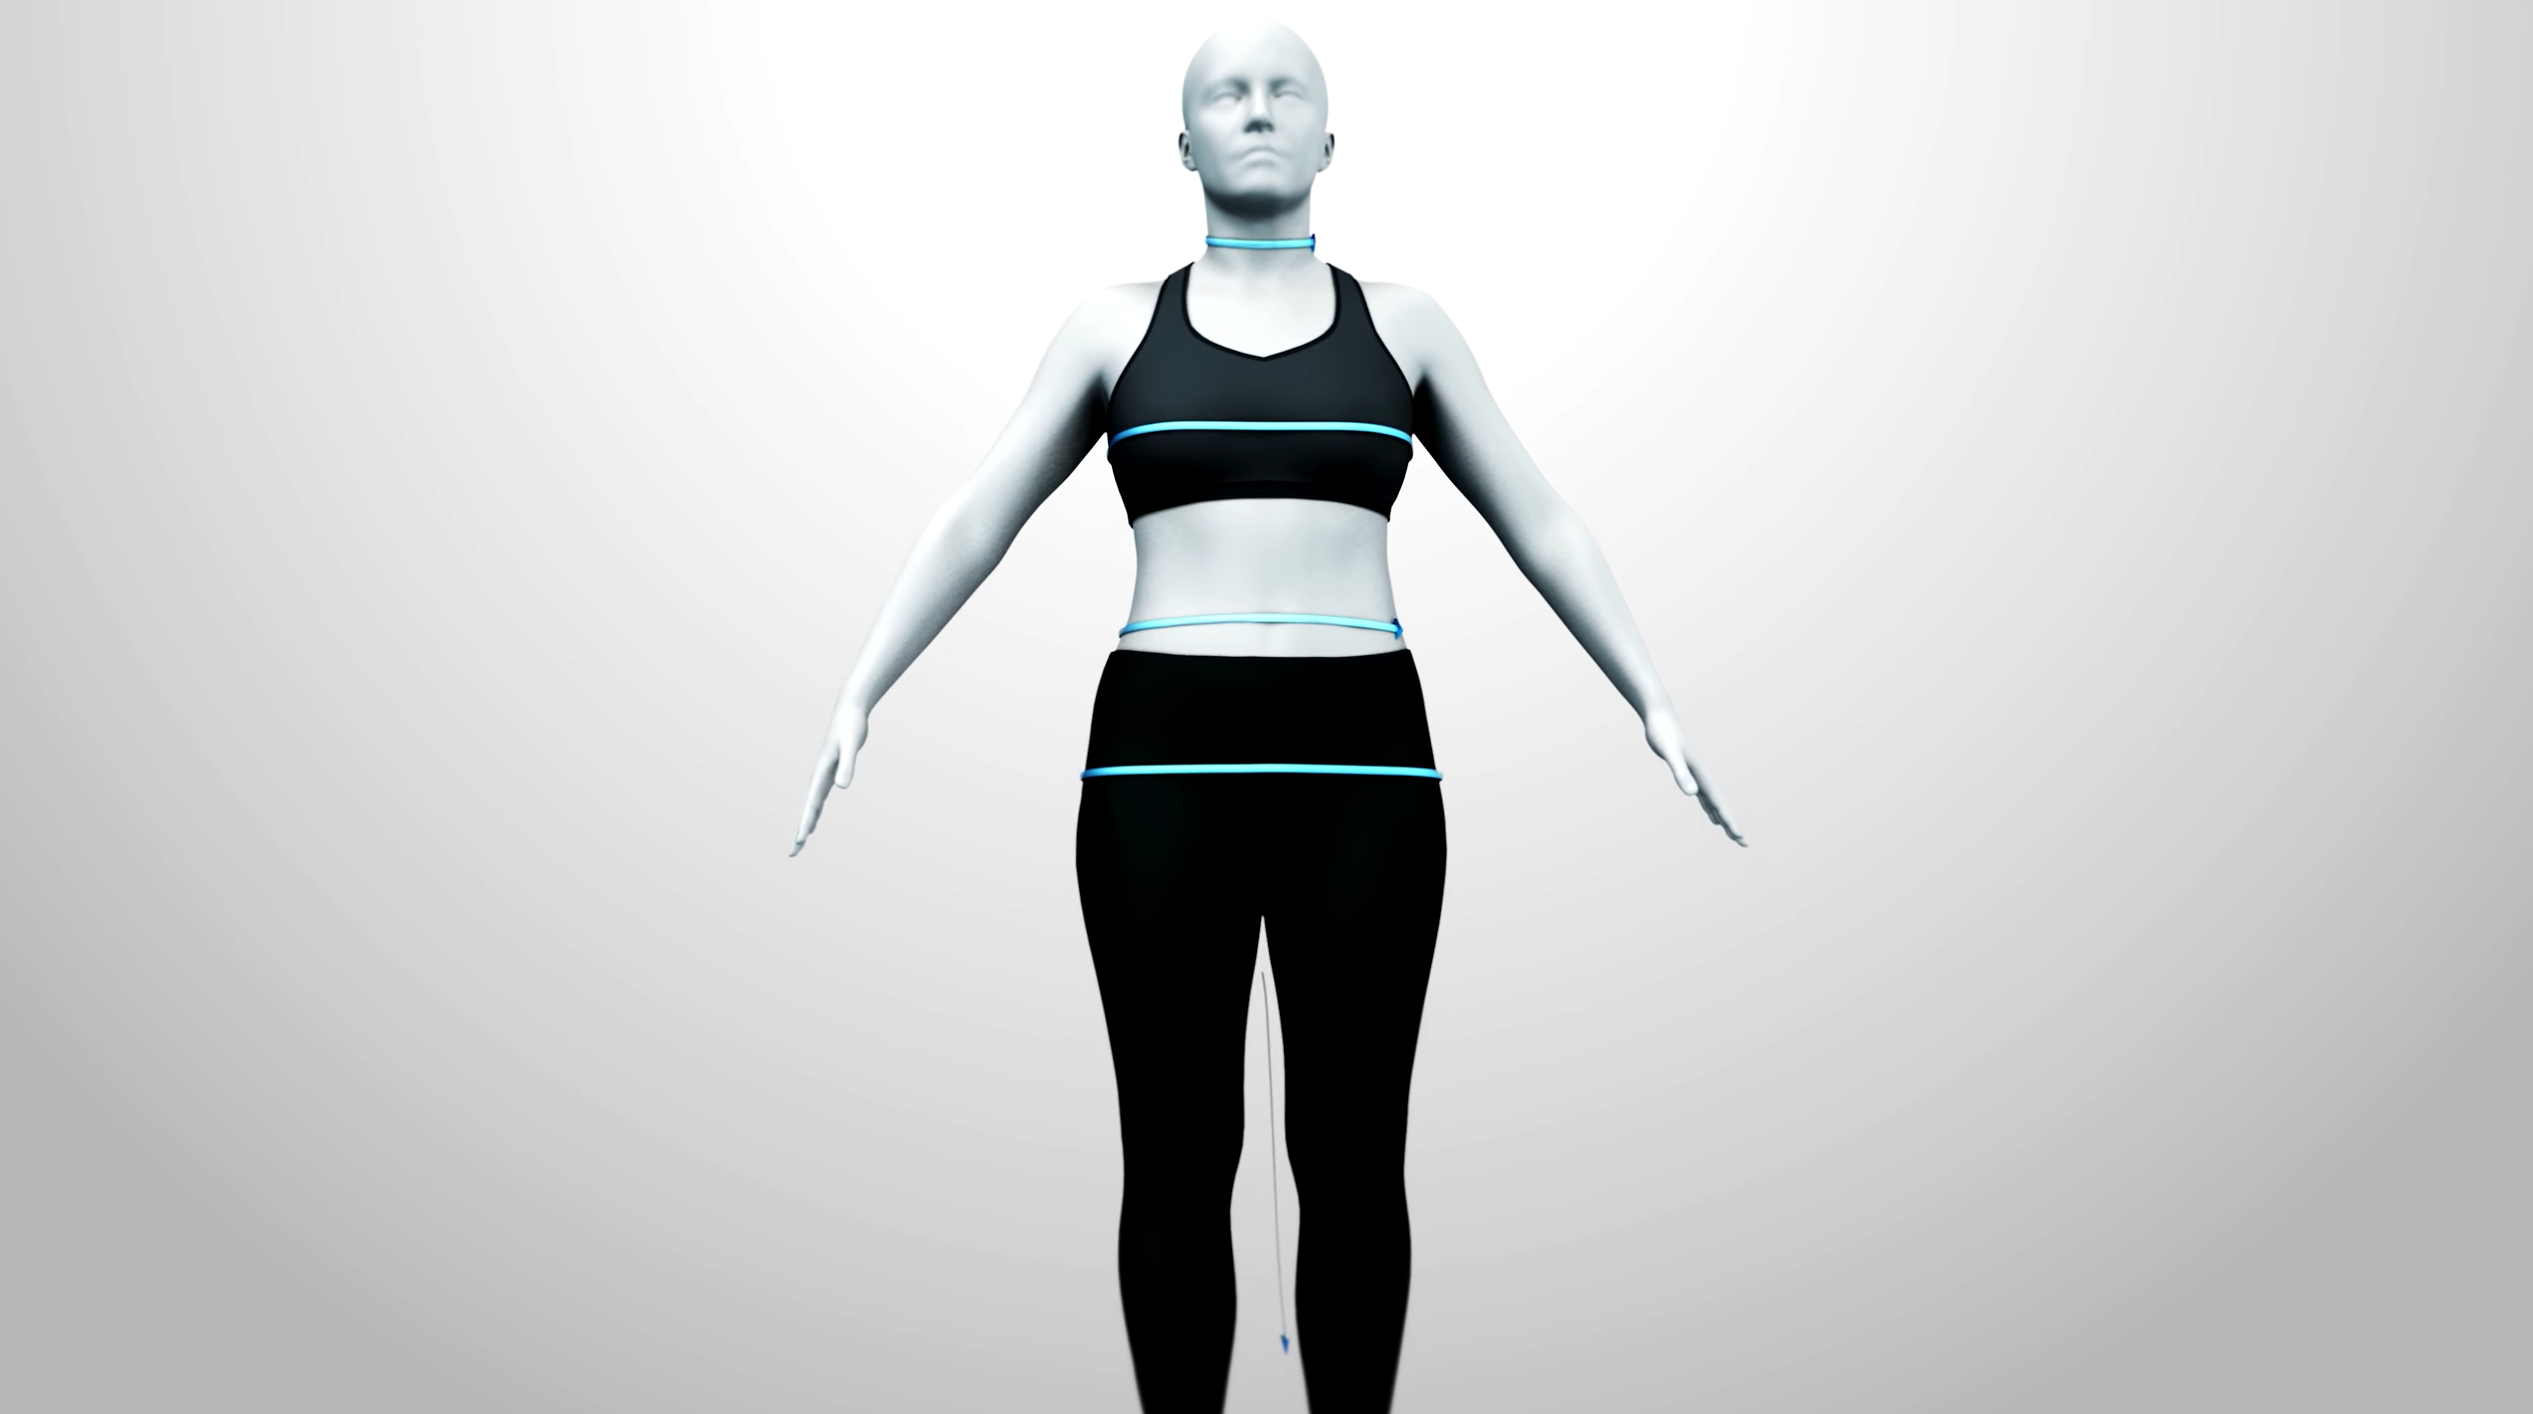 Amazon Acquires 3D Body Modeling Company That Could Be Useful For Fashion, Gaming